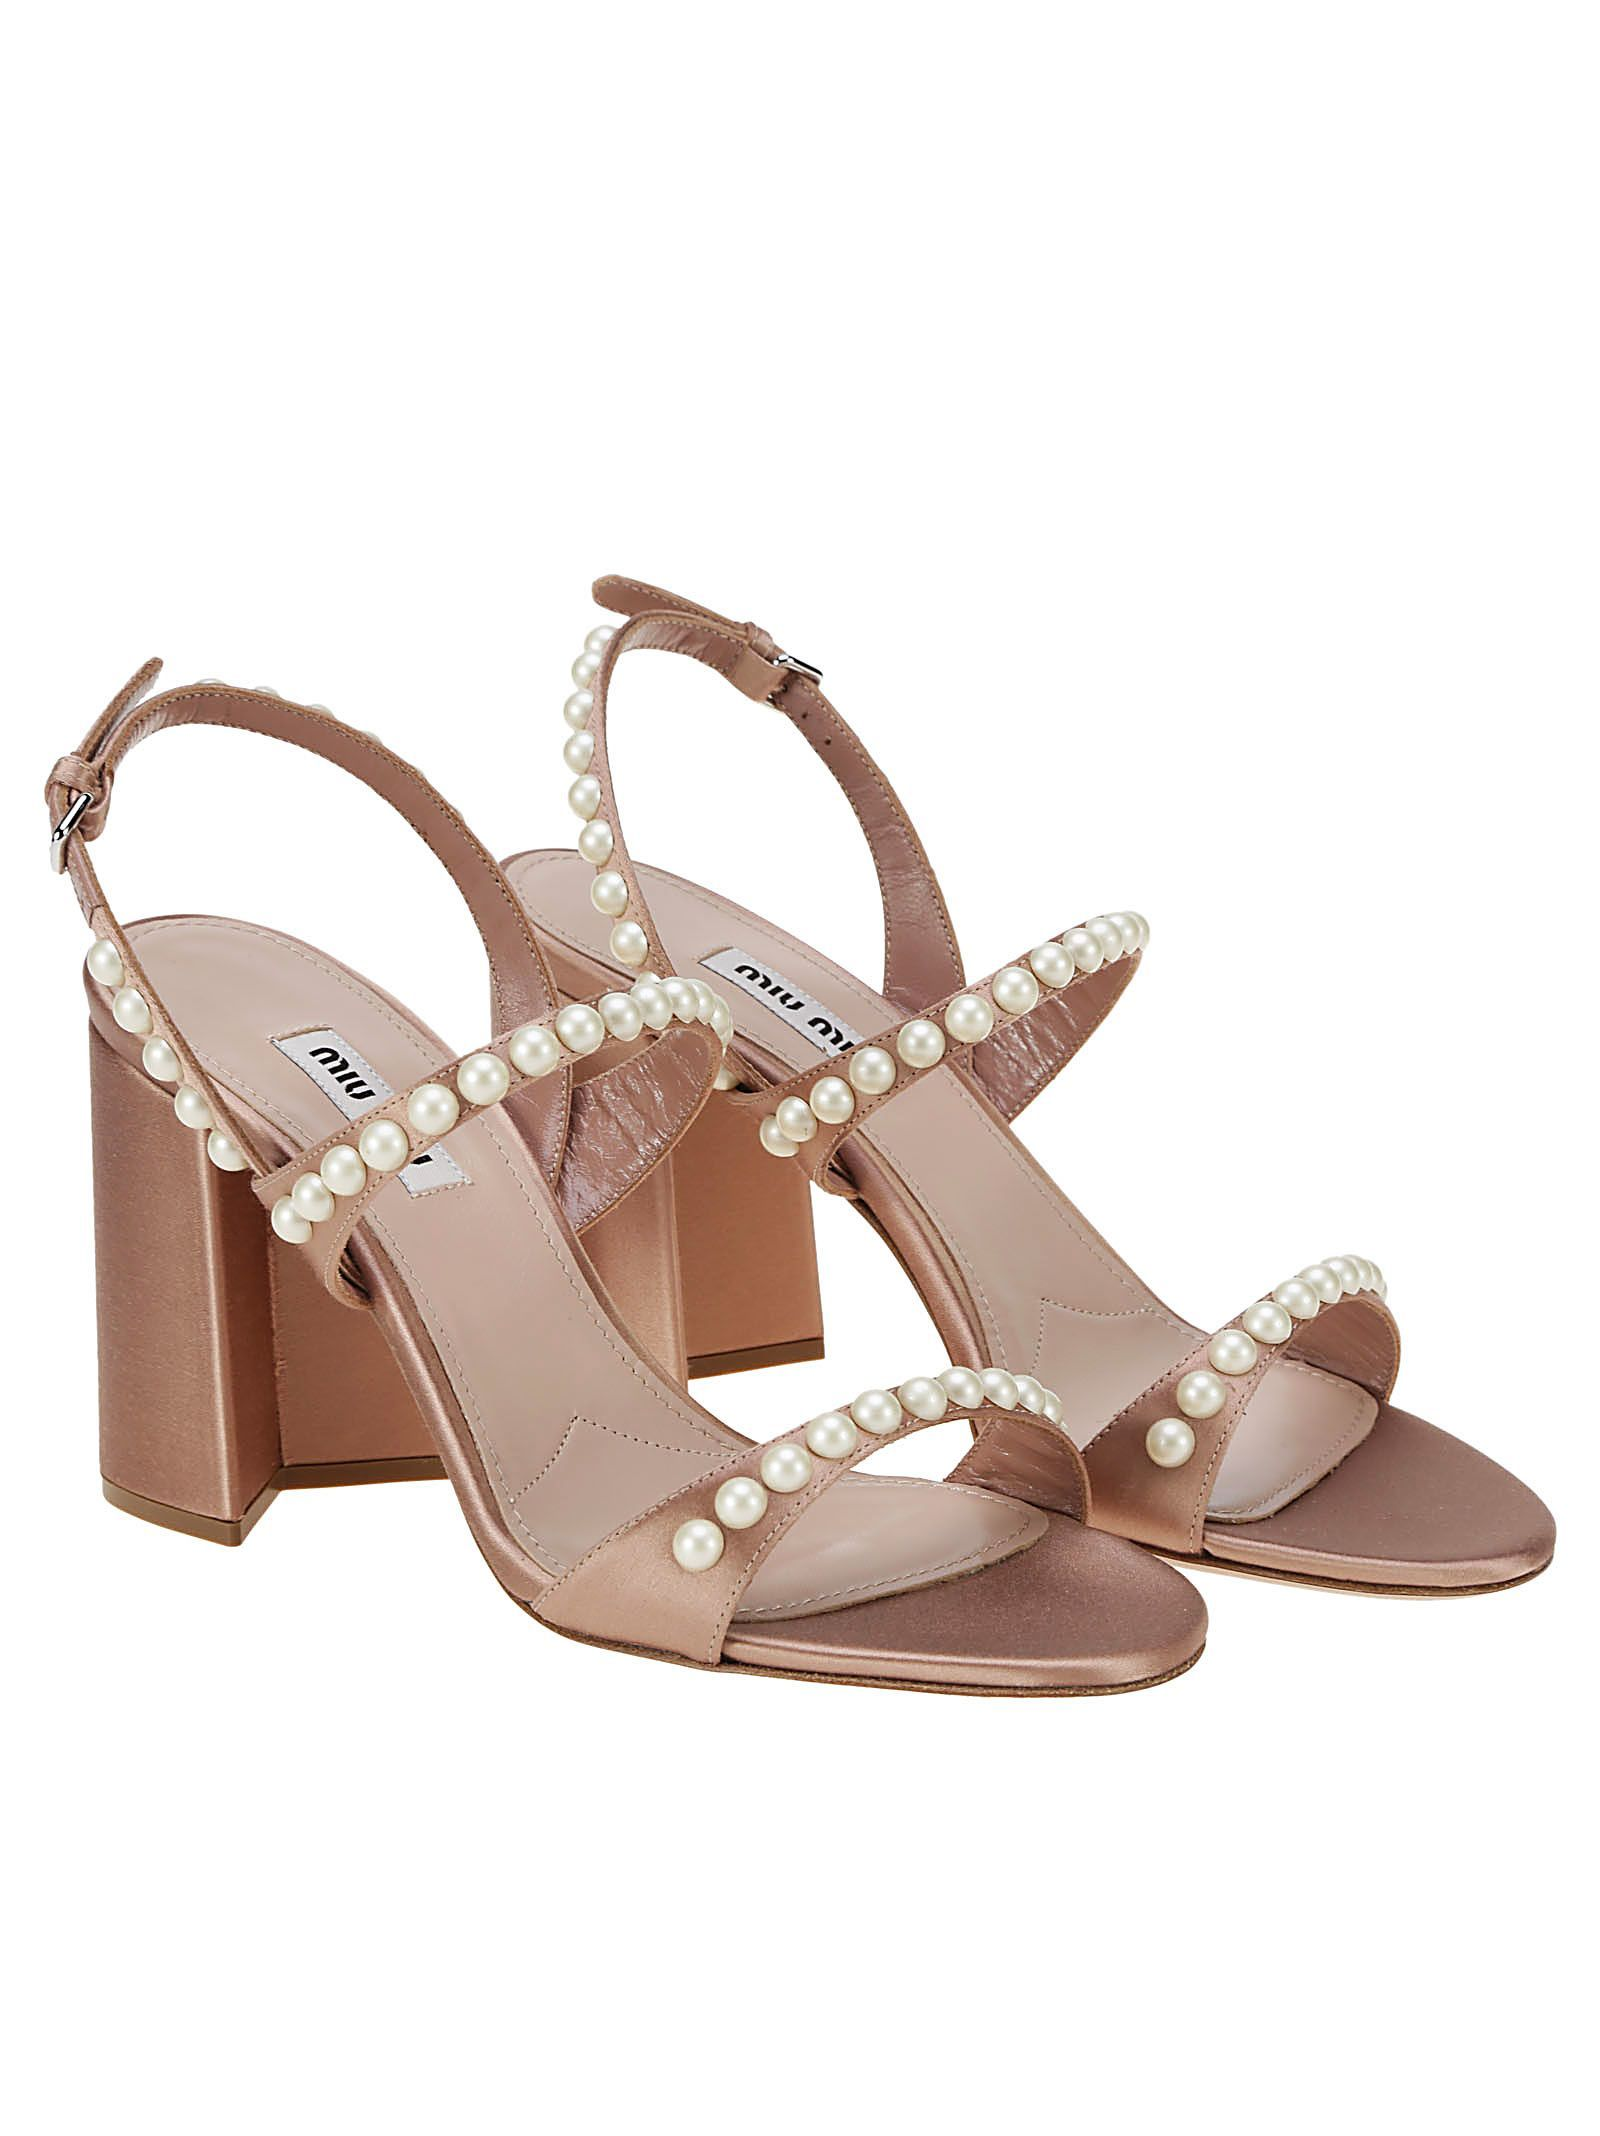 88f2fbca01f2 MIU MIU PEARL-EMBELLISHED BLOCK HEEL SANDALS.  miumiu  shoes